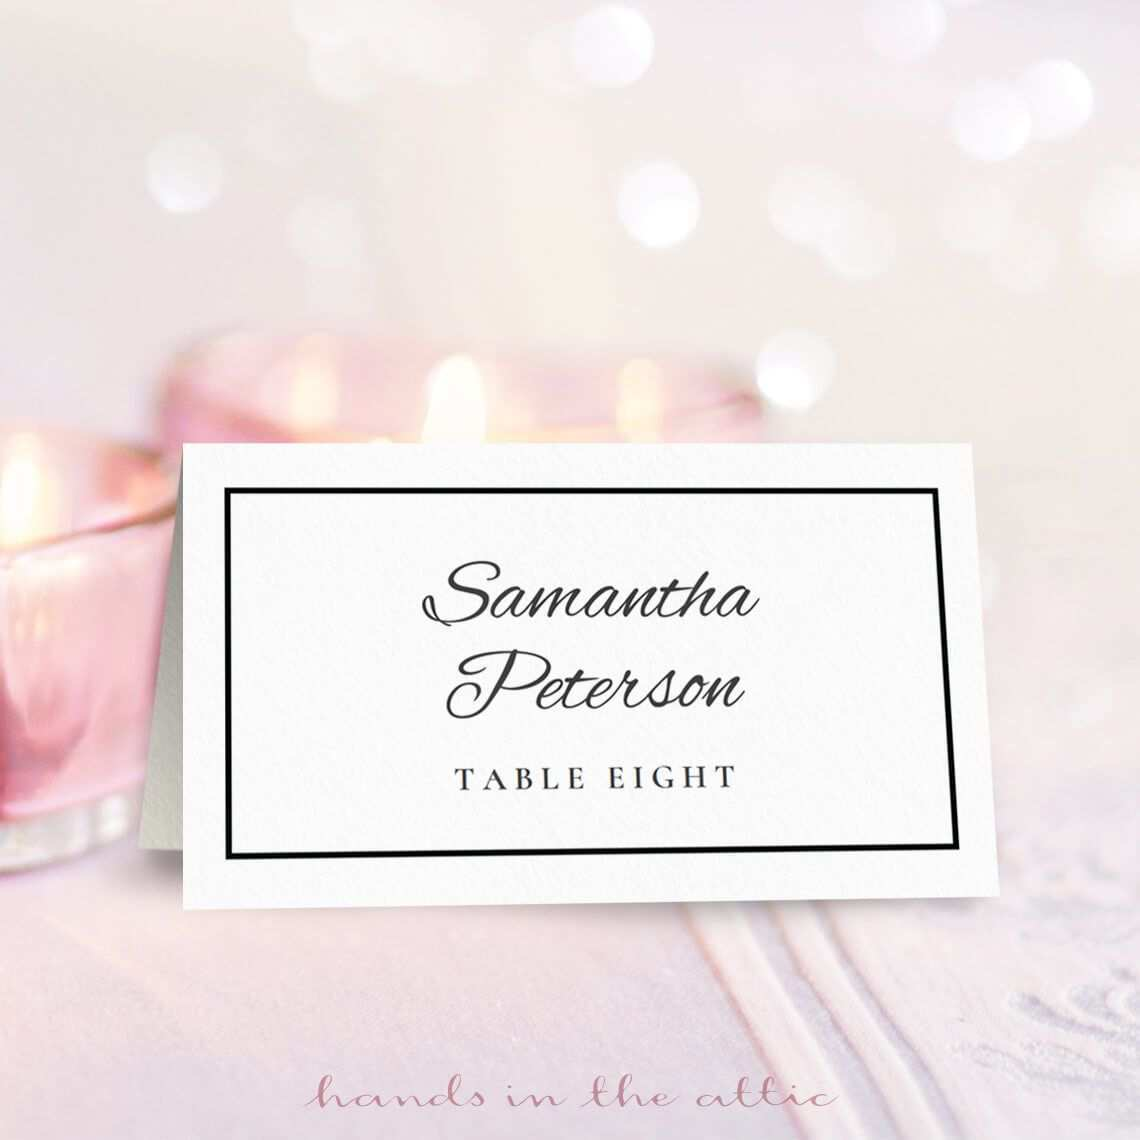 95 Customize Name Cards For Tables Template Free Now for Name Cards For Tables Template Free